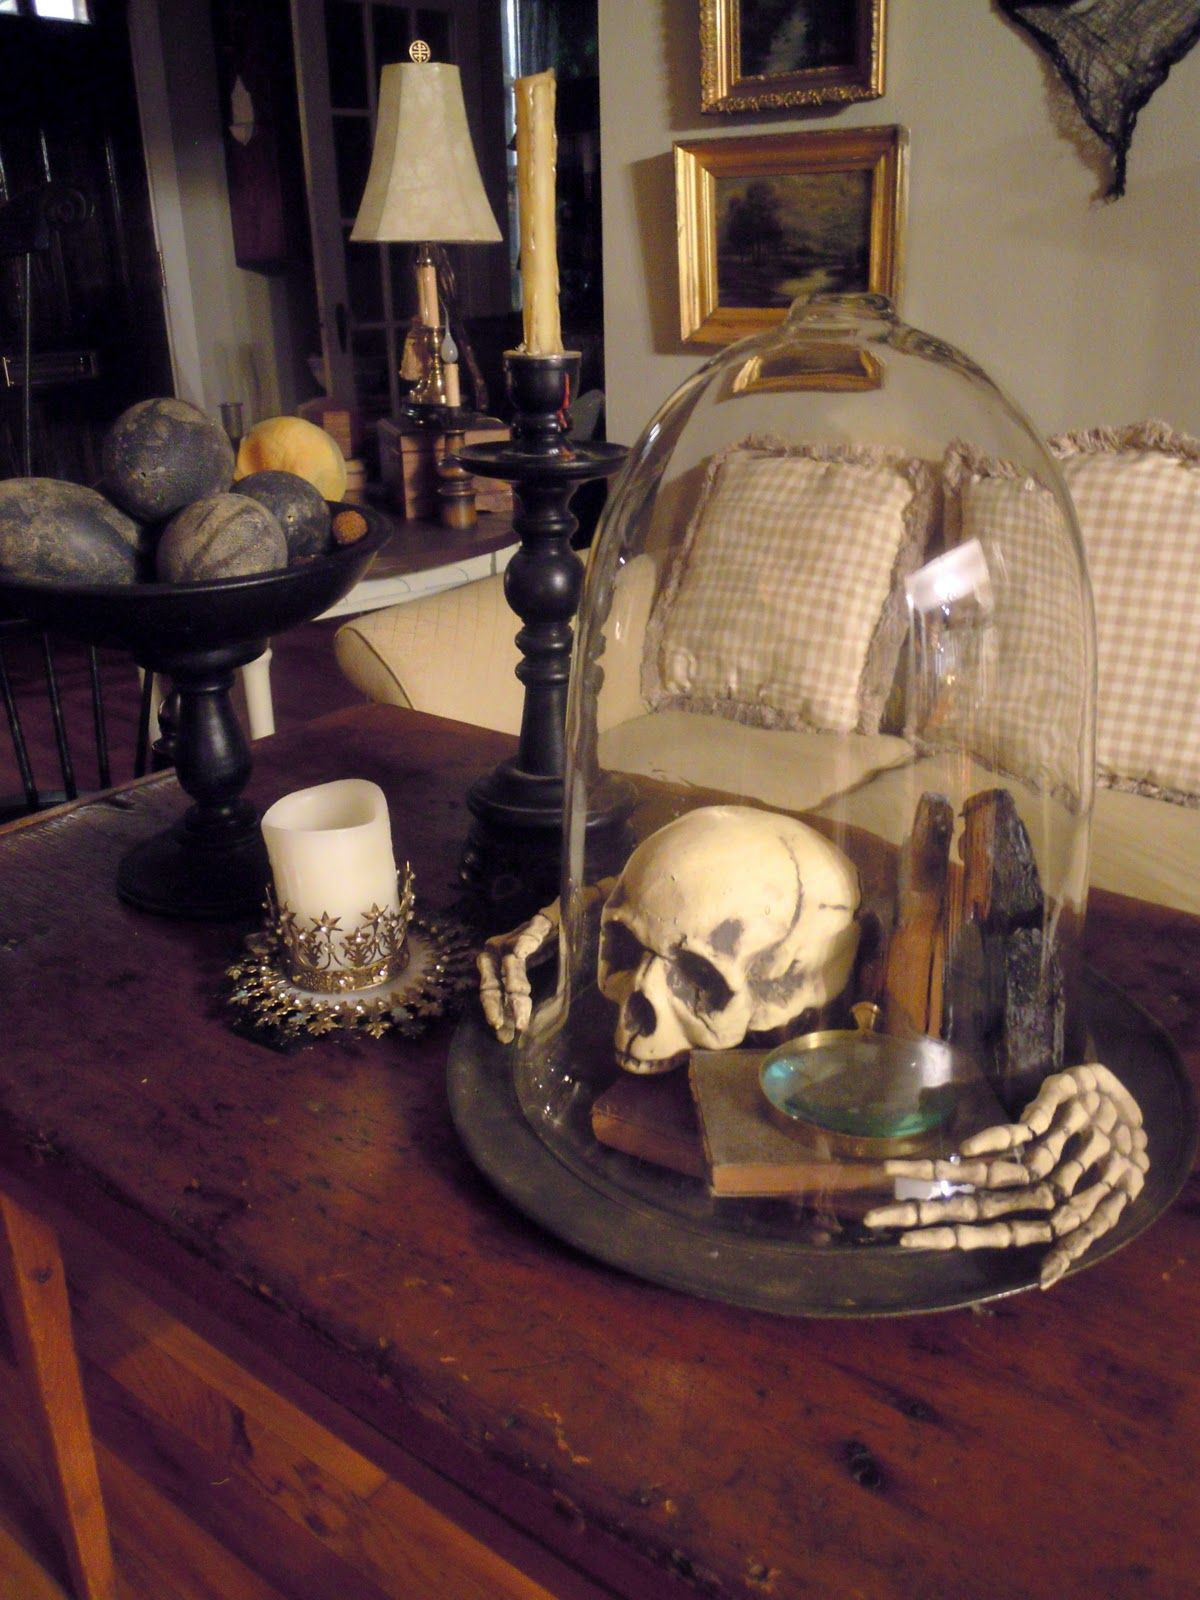 A Tiny Cottage On Grand TIS THE SEASON TO PARTY Halloween - Halloween Table Decorations Pinterest